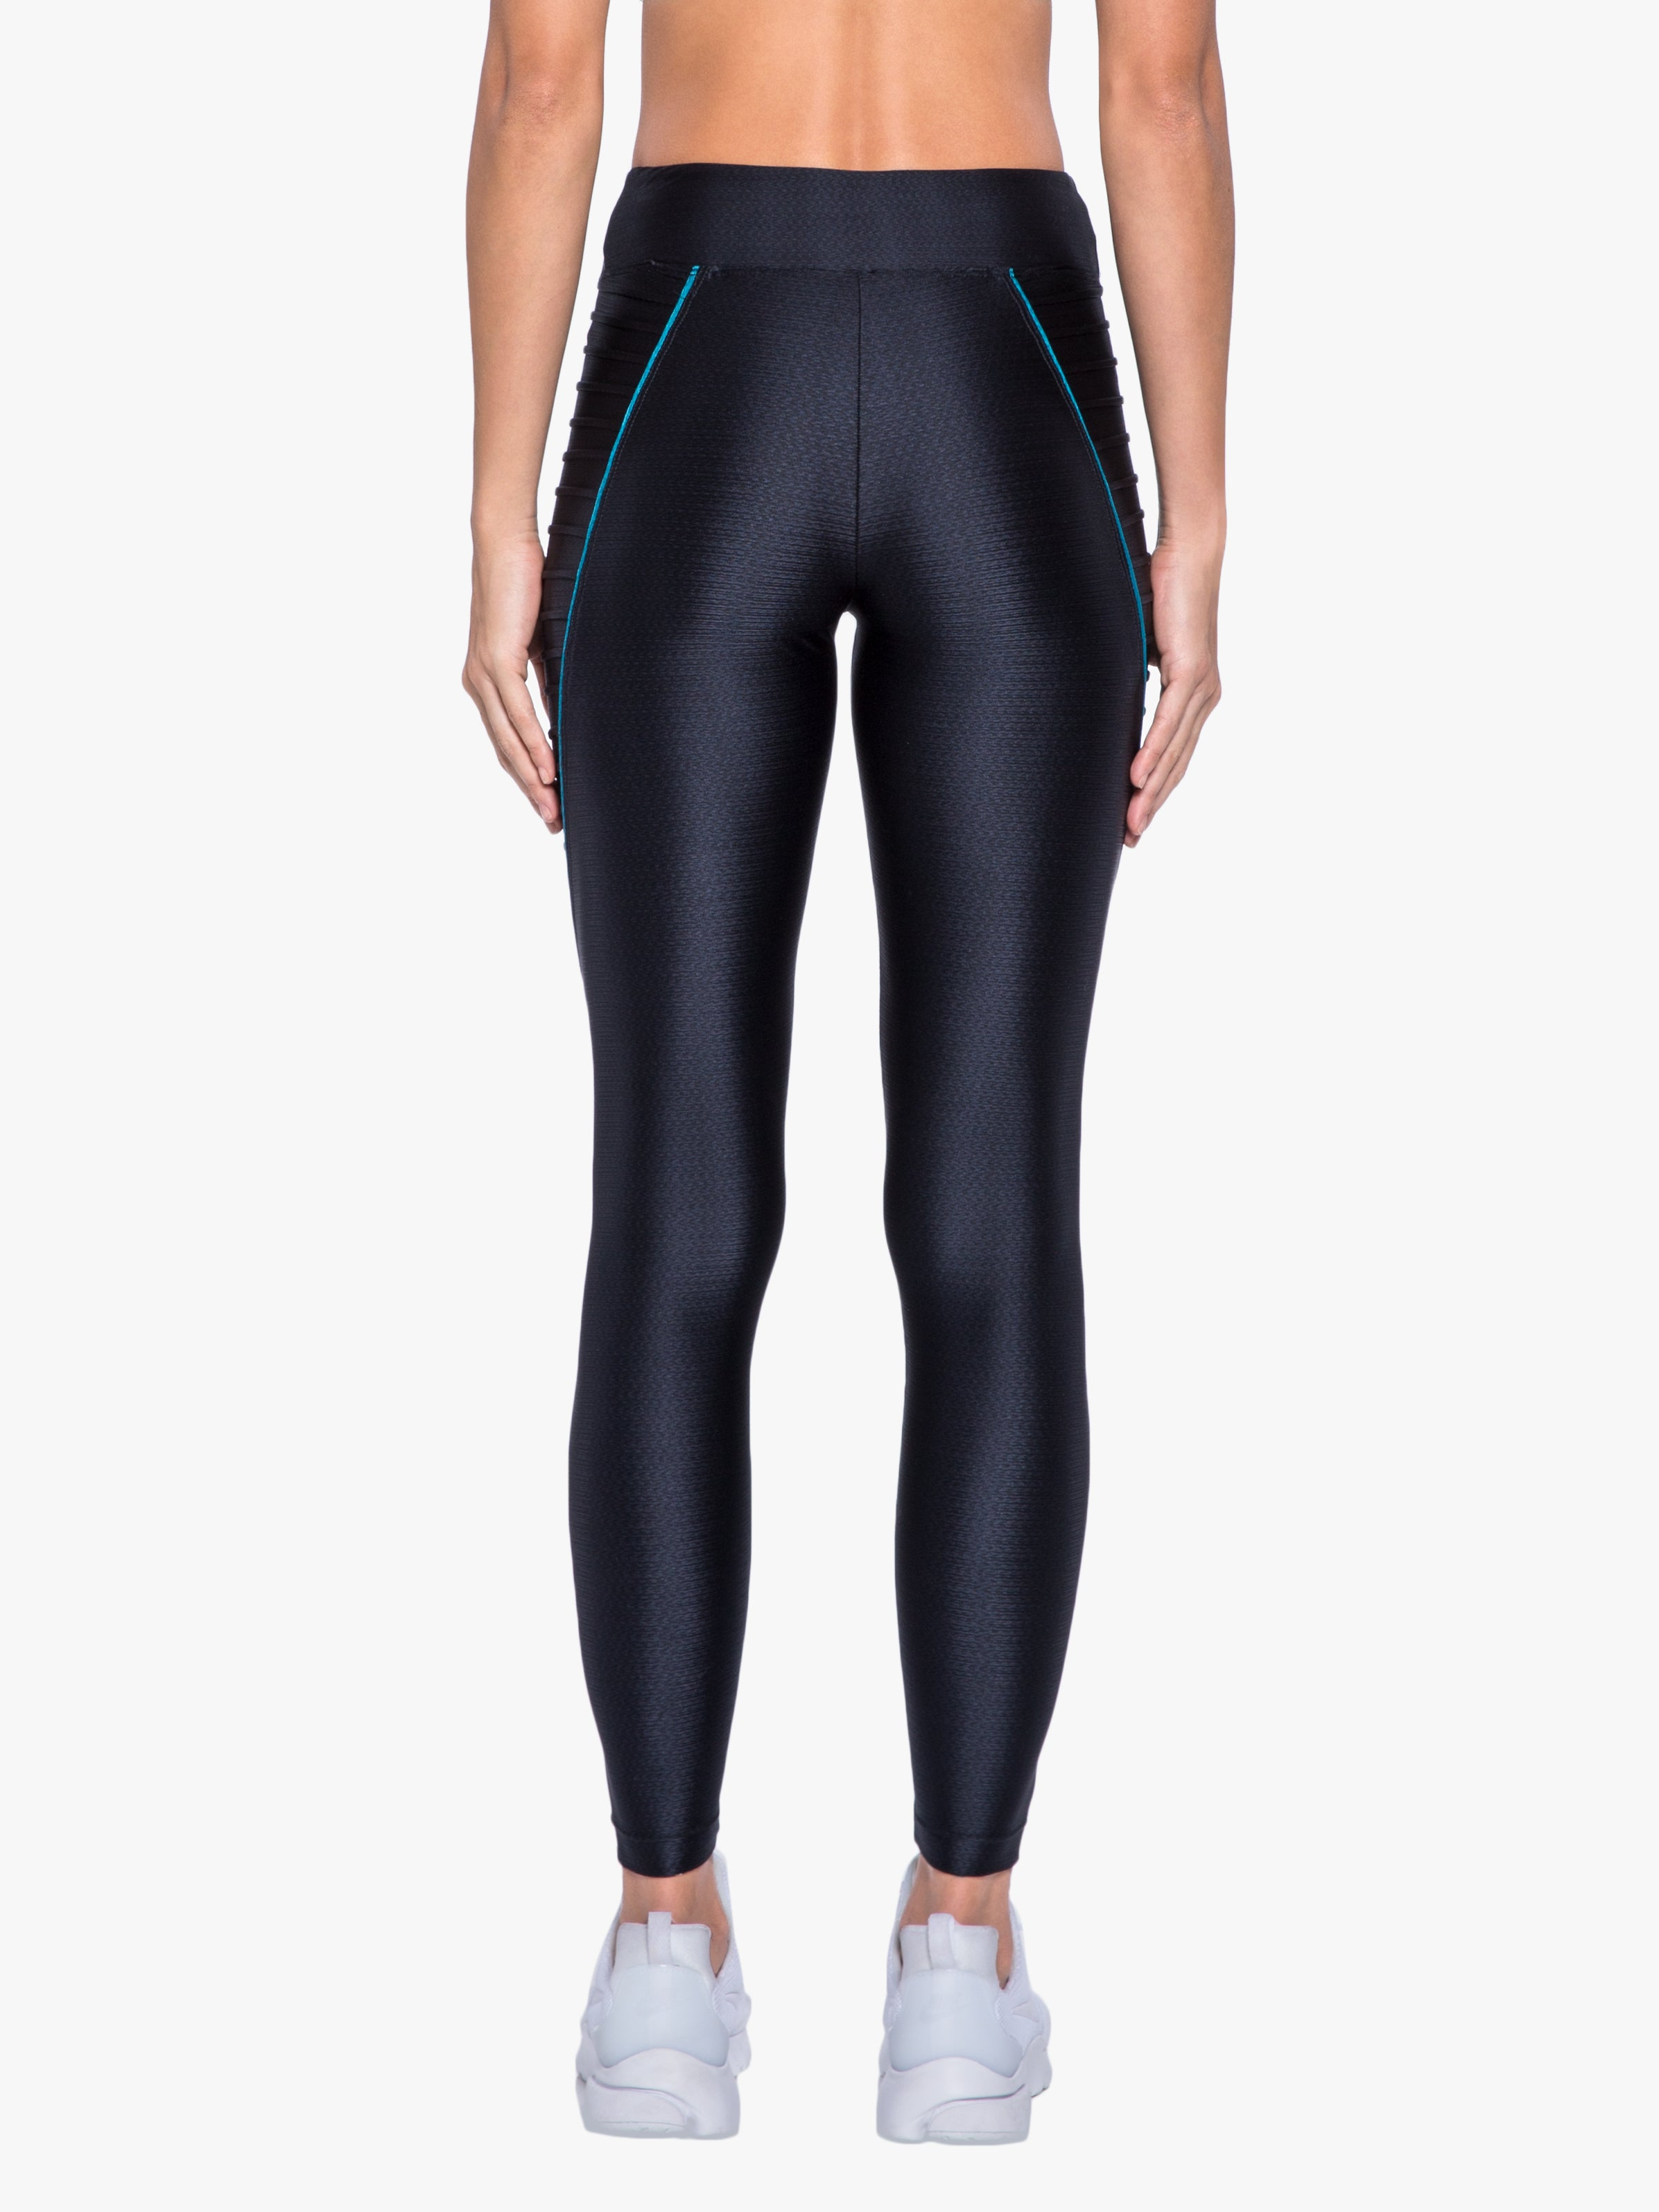 Ethereal Mid-Rise Legging - Black